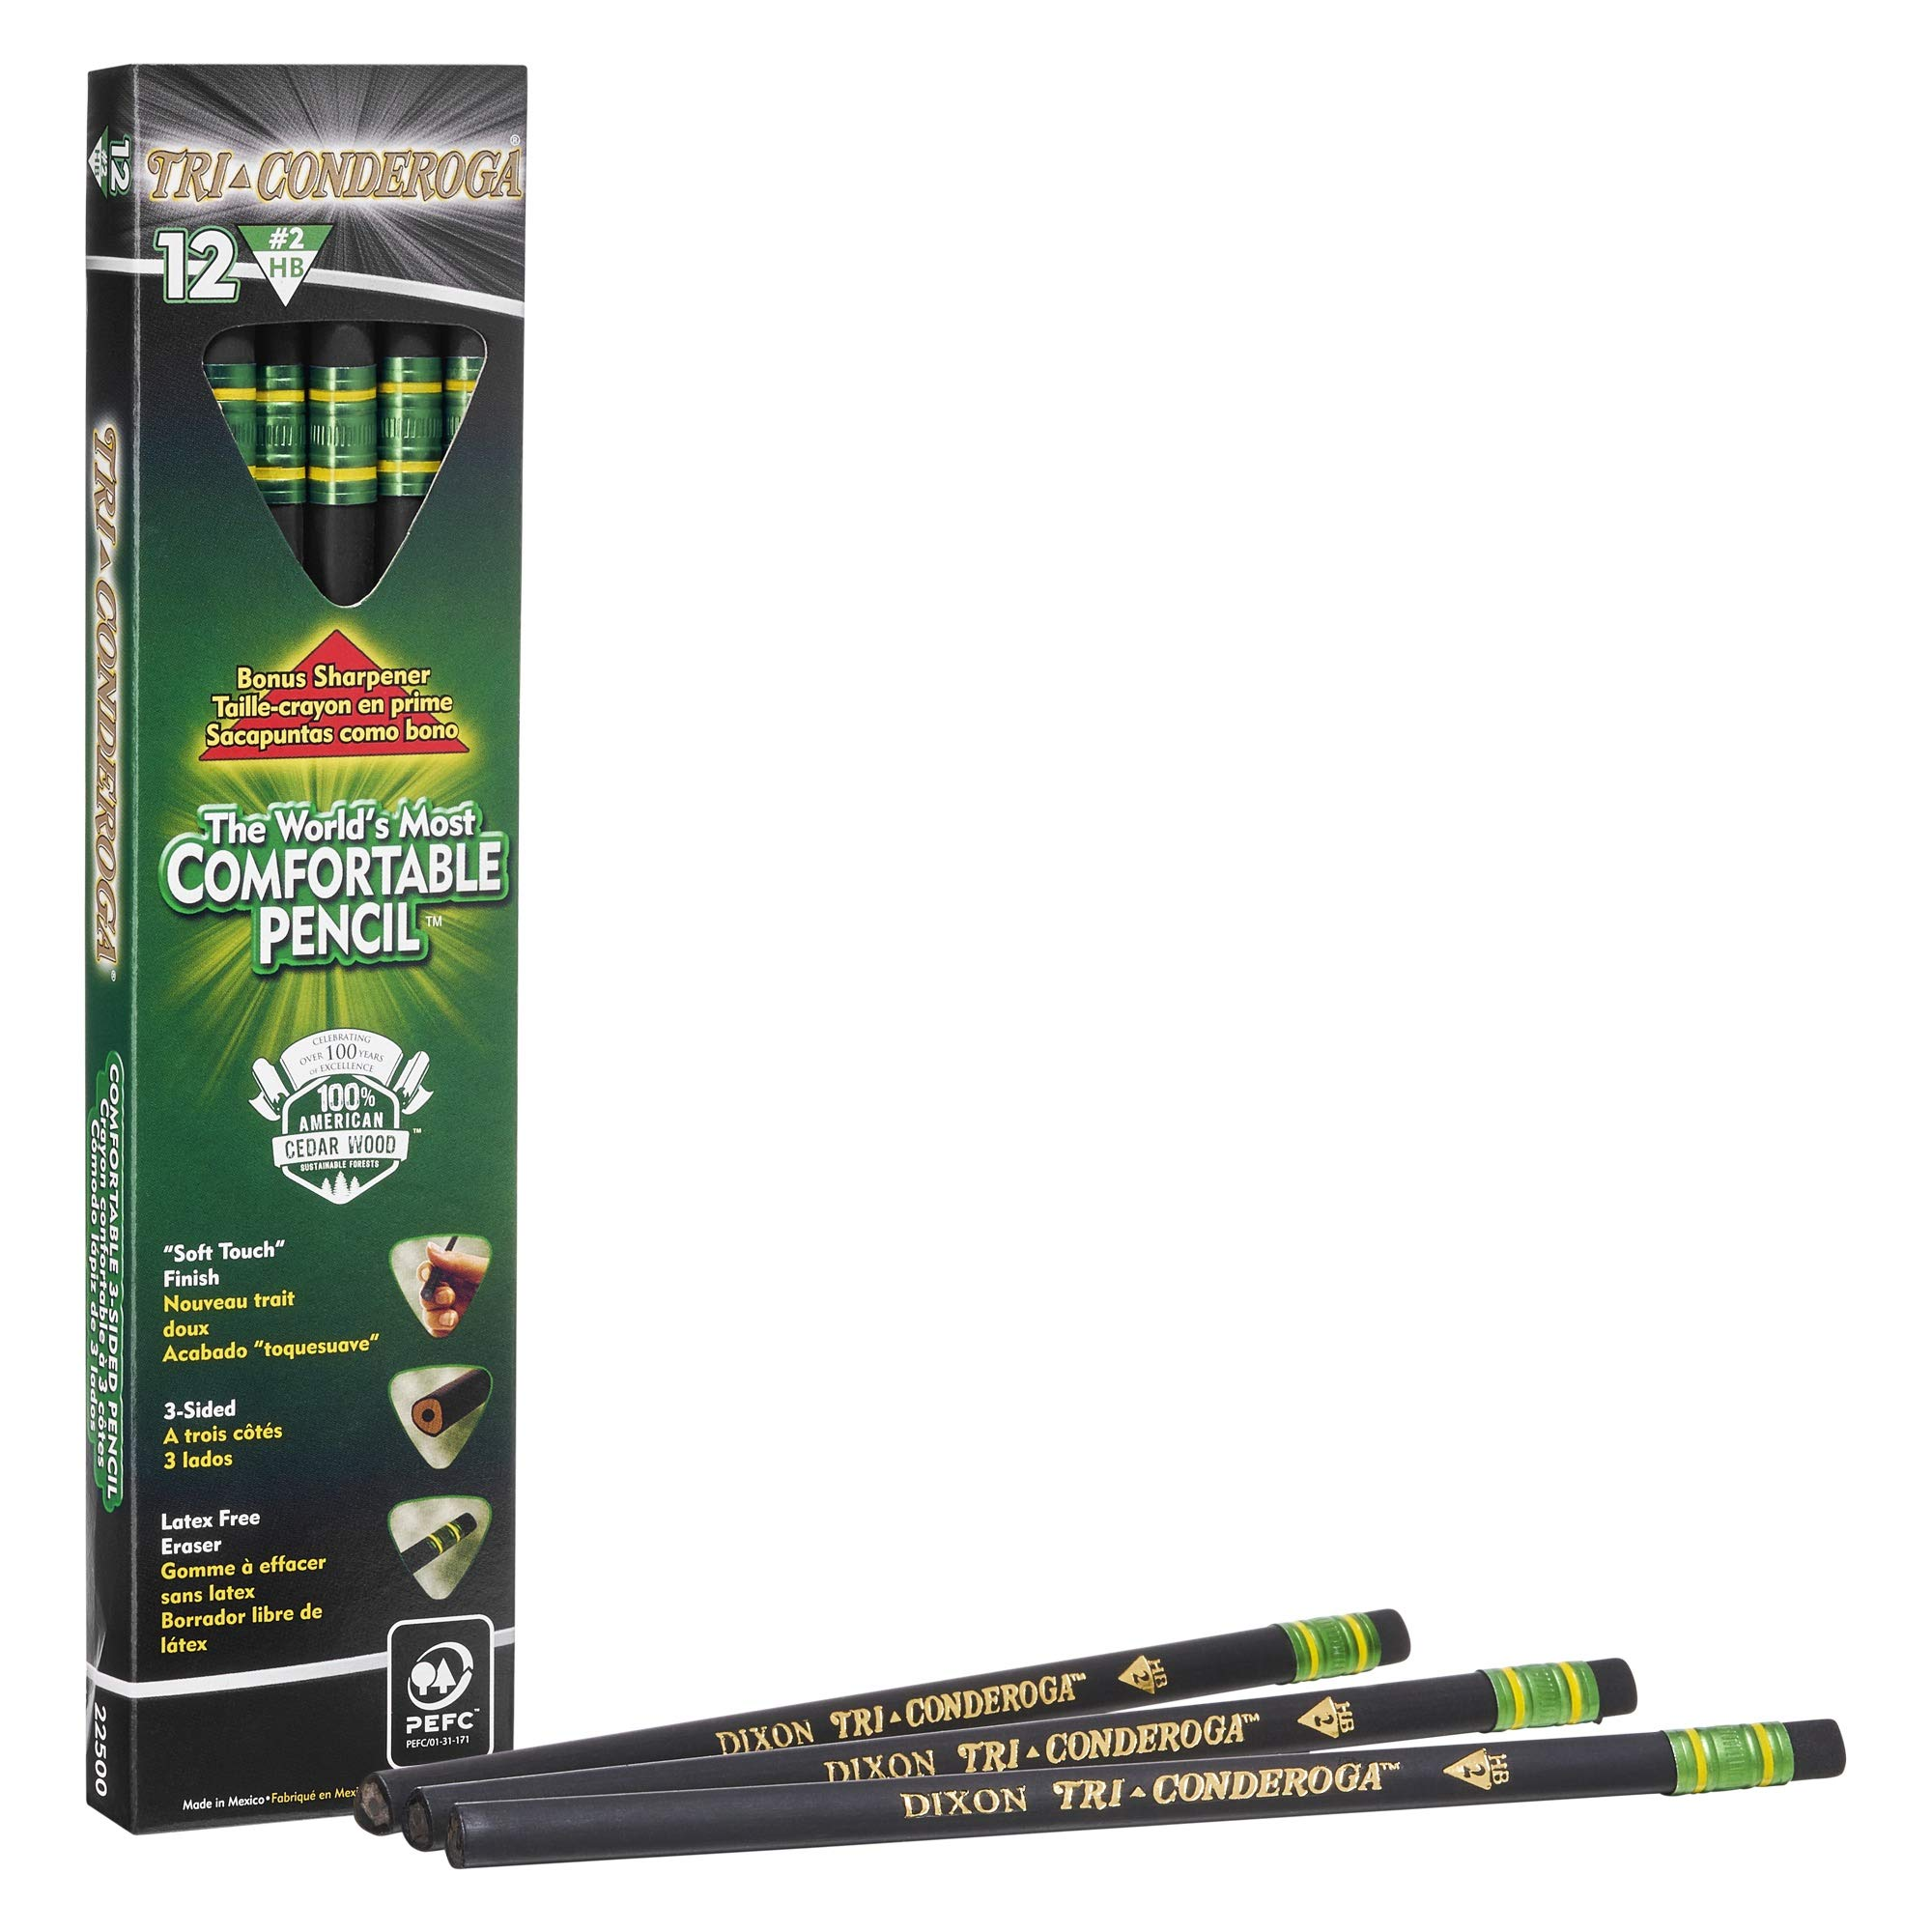 TICONDEROGA Tri-Conderoga No. 2 Triangle Pencils 6 12-Count Boxes, Total 72 Pencils, (Wood Cased, Black Writing) w/BONUS Sharpener (22500) by Ticonderoga